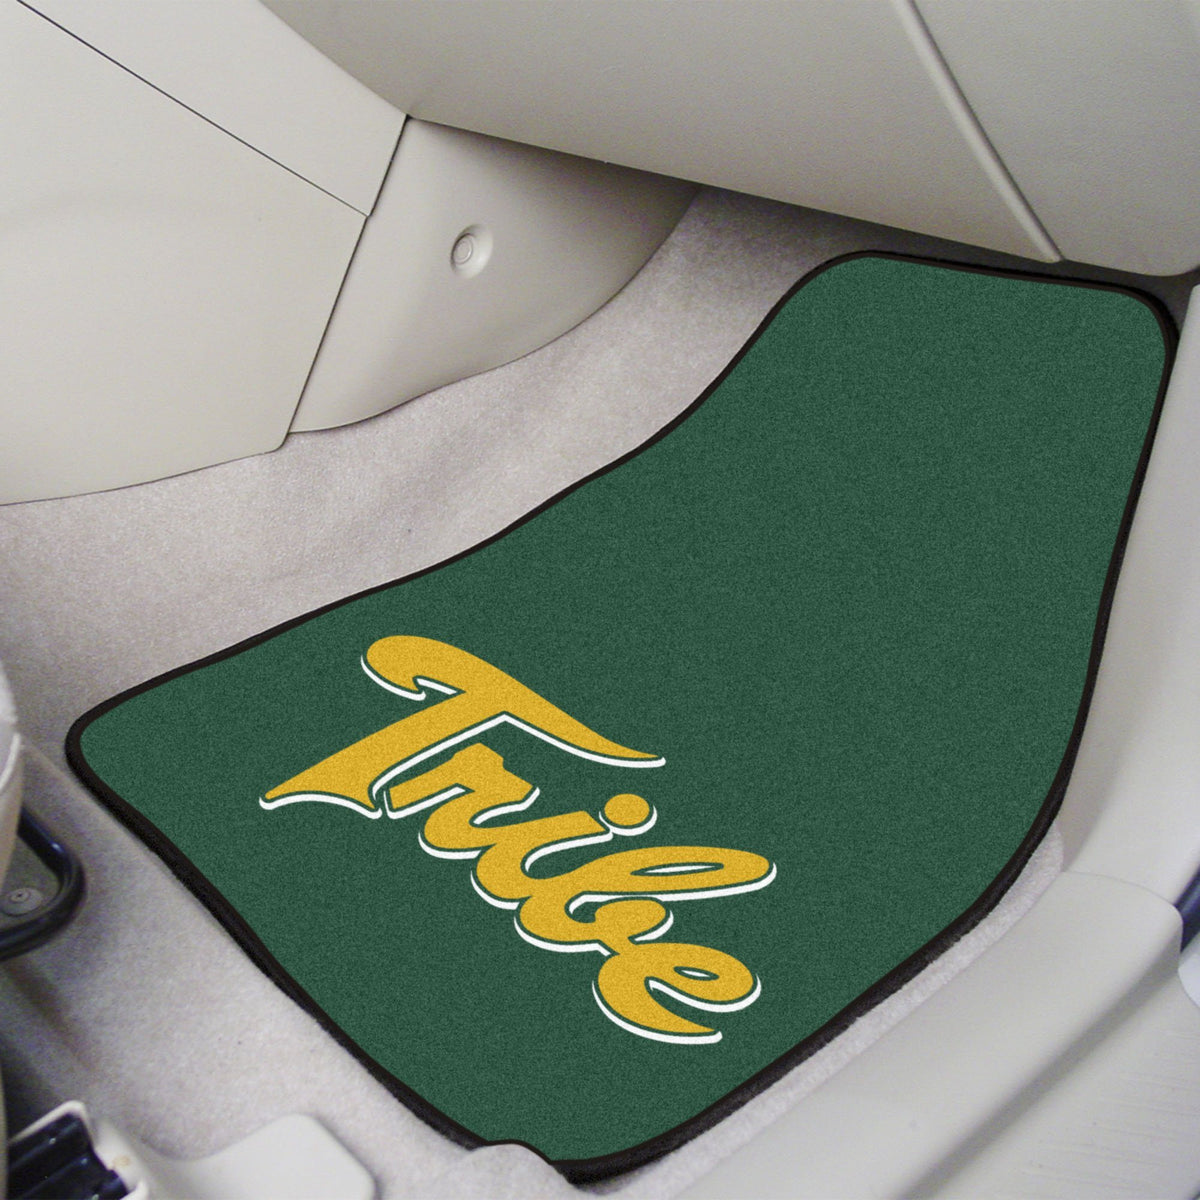 Collegiate - Carpet Car Mat, 2-Piece Set: T - Z Collegiate Car Mat, Front Car Mats, 2-pc Carpet Car Mat Set, Collegiate, Auto Fan Mats William & Mary